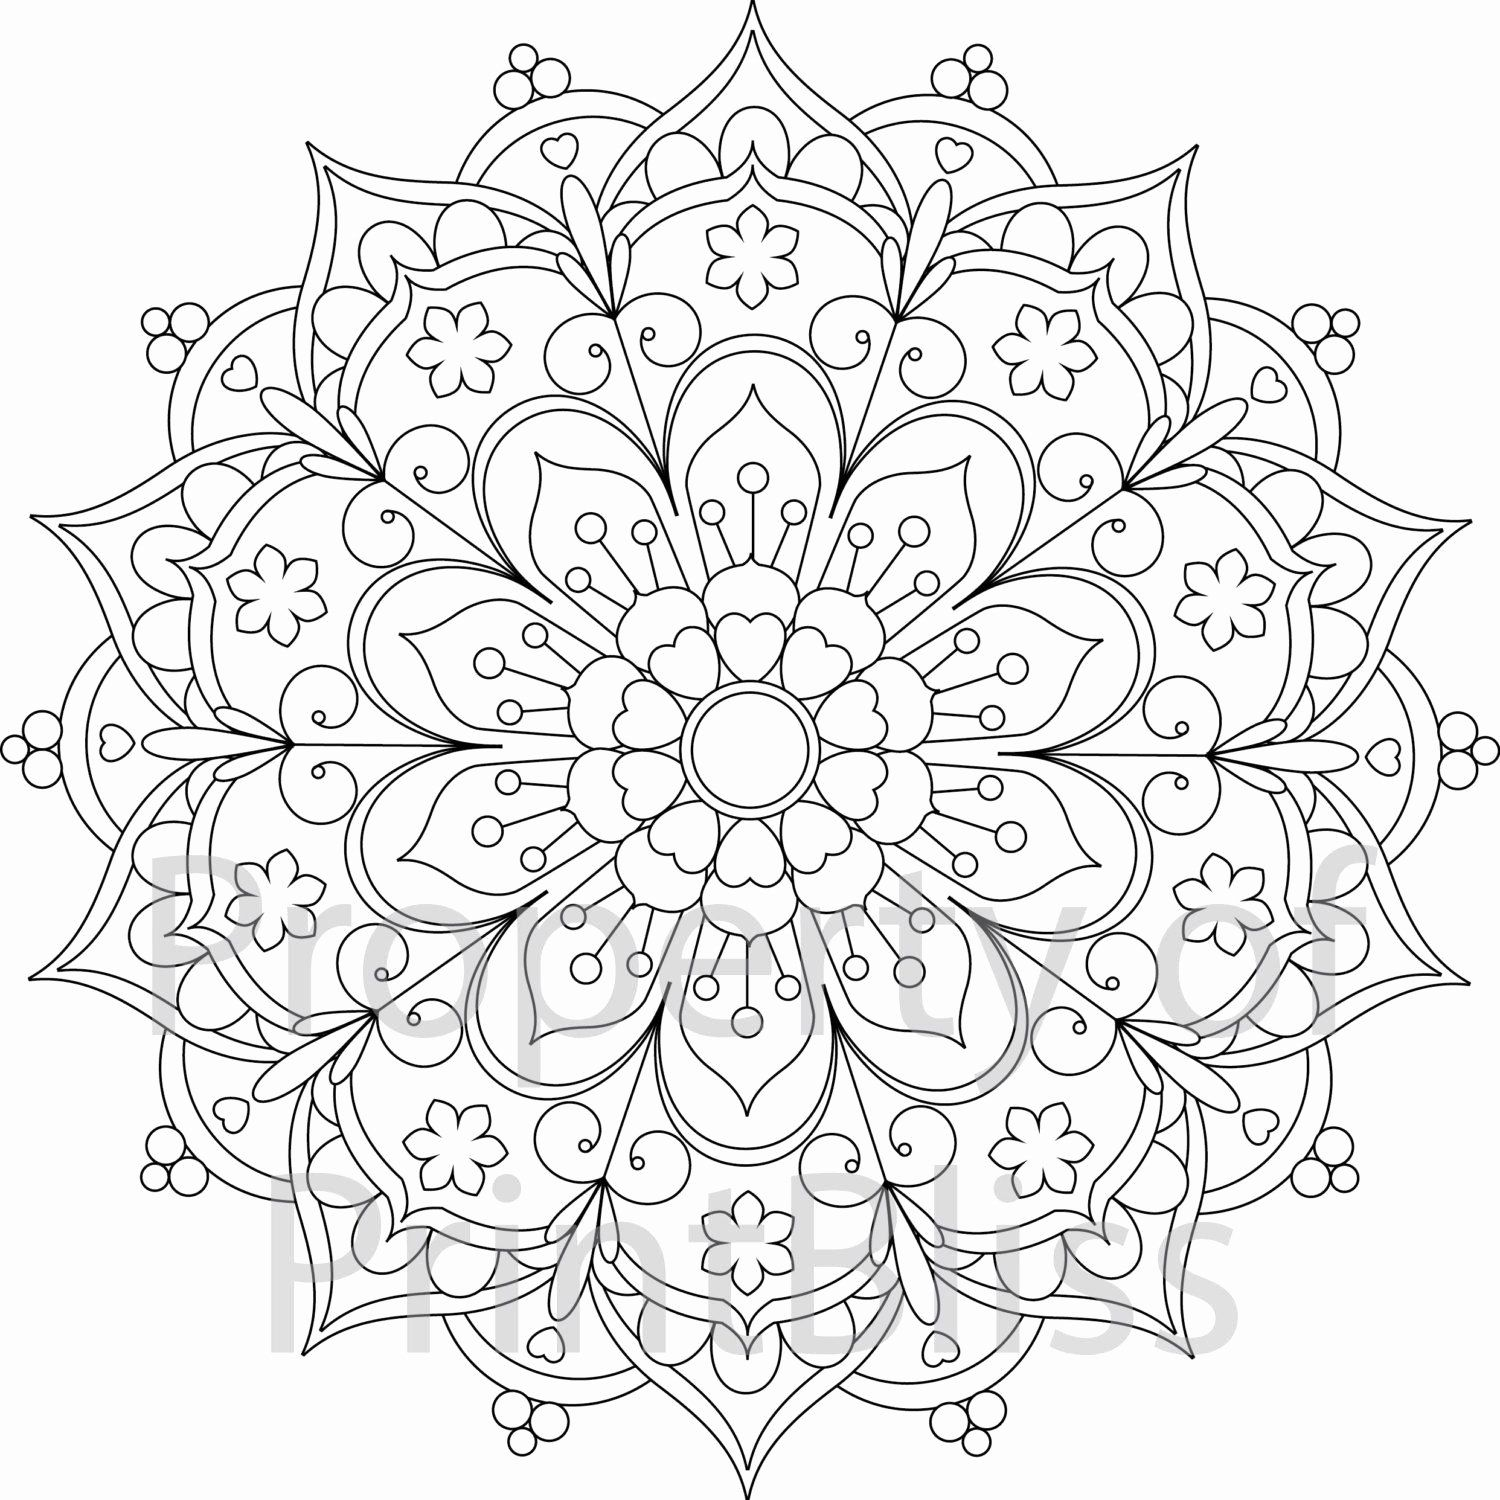 Pin On Top Coloring Books For Adult And Kids 2020